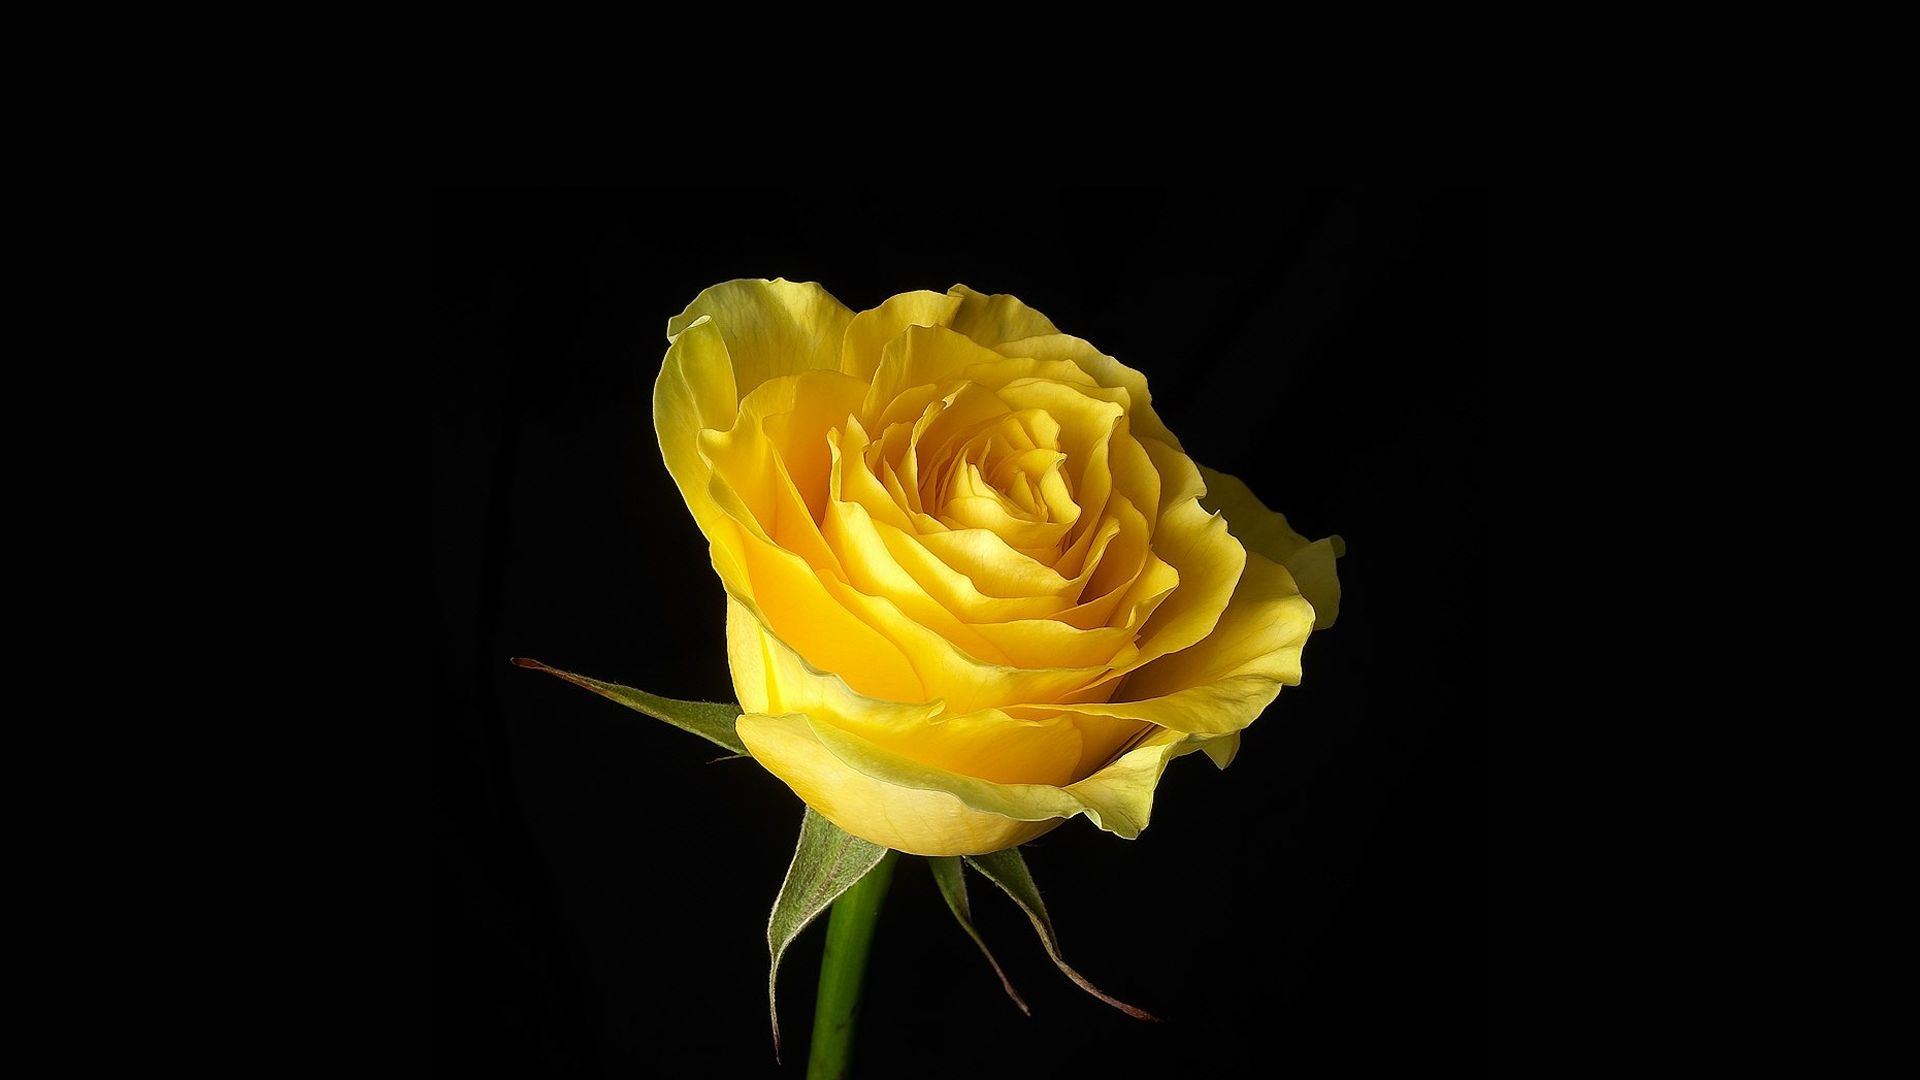 I Close My Eyes Heaven Help Me Yellow Roses Rose Flower Wallpaper Rose Images